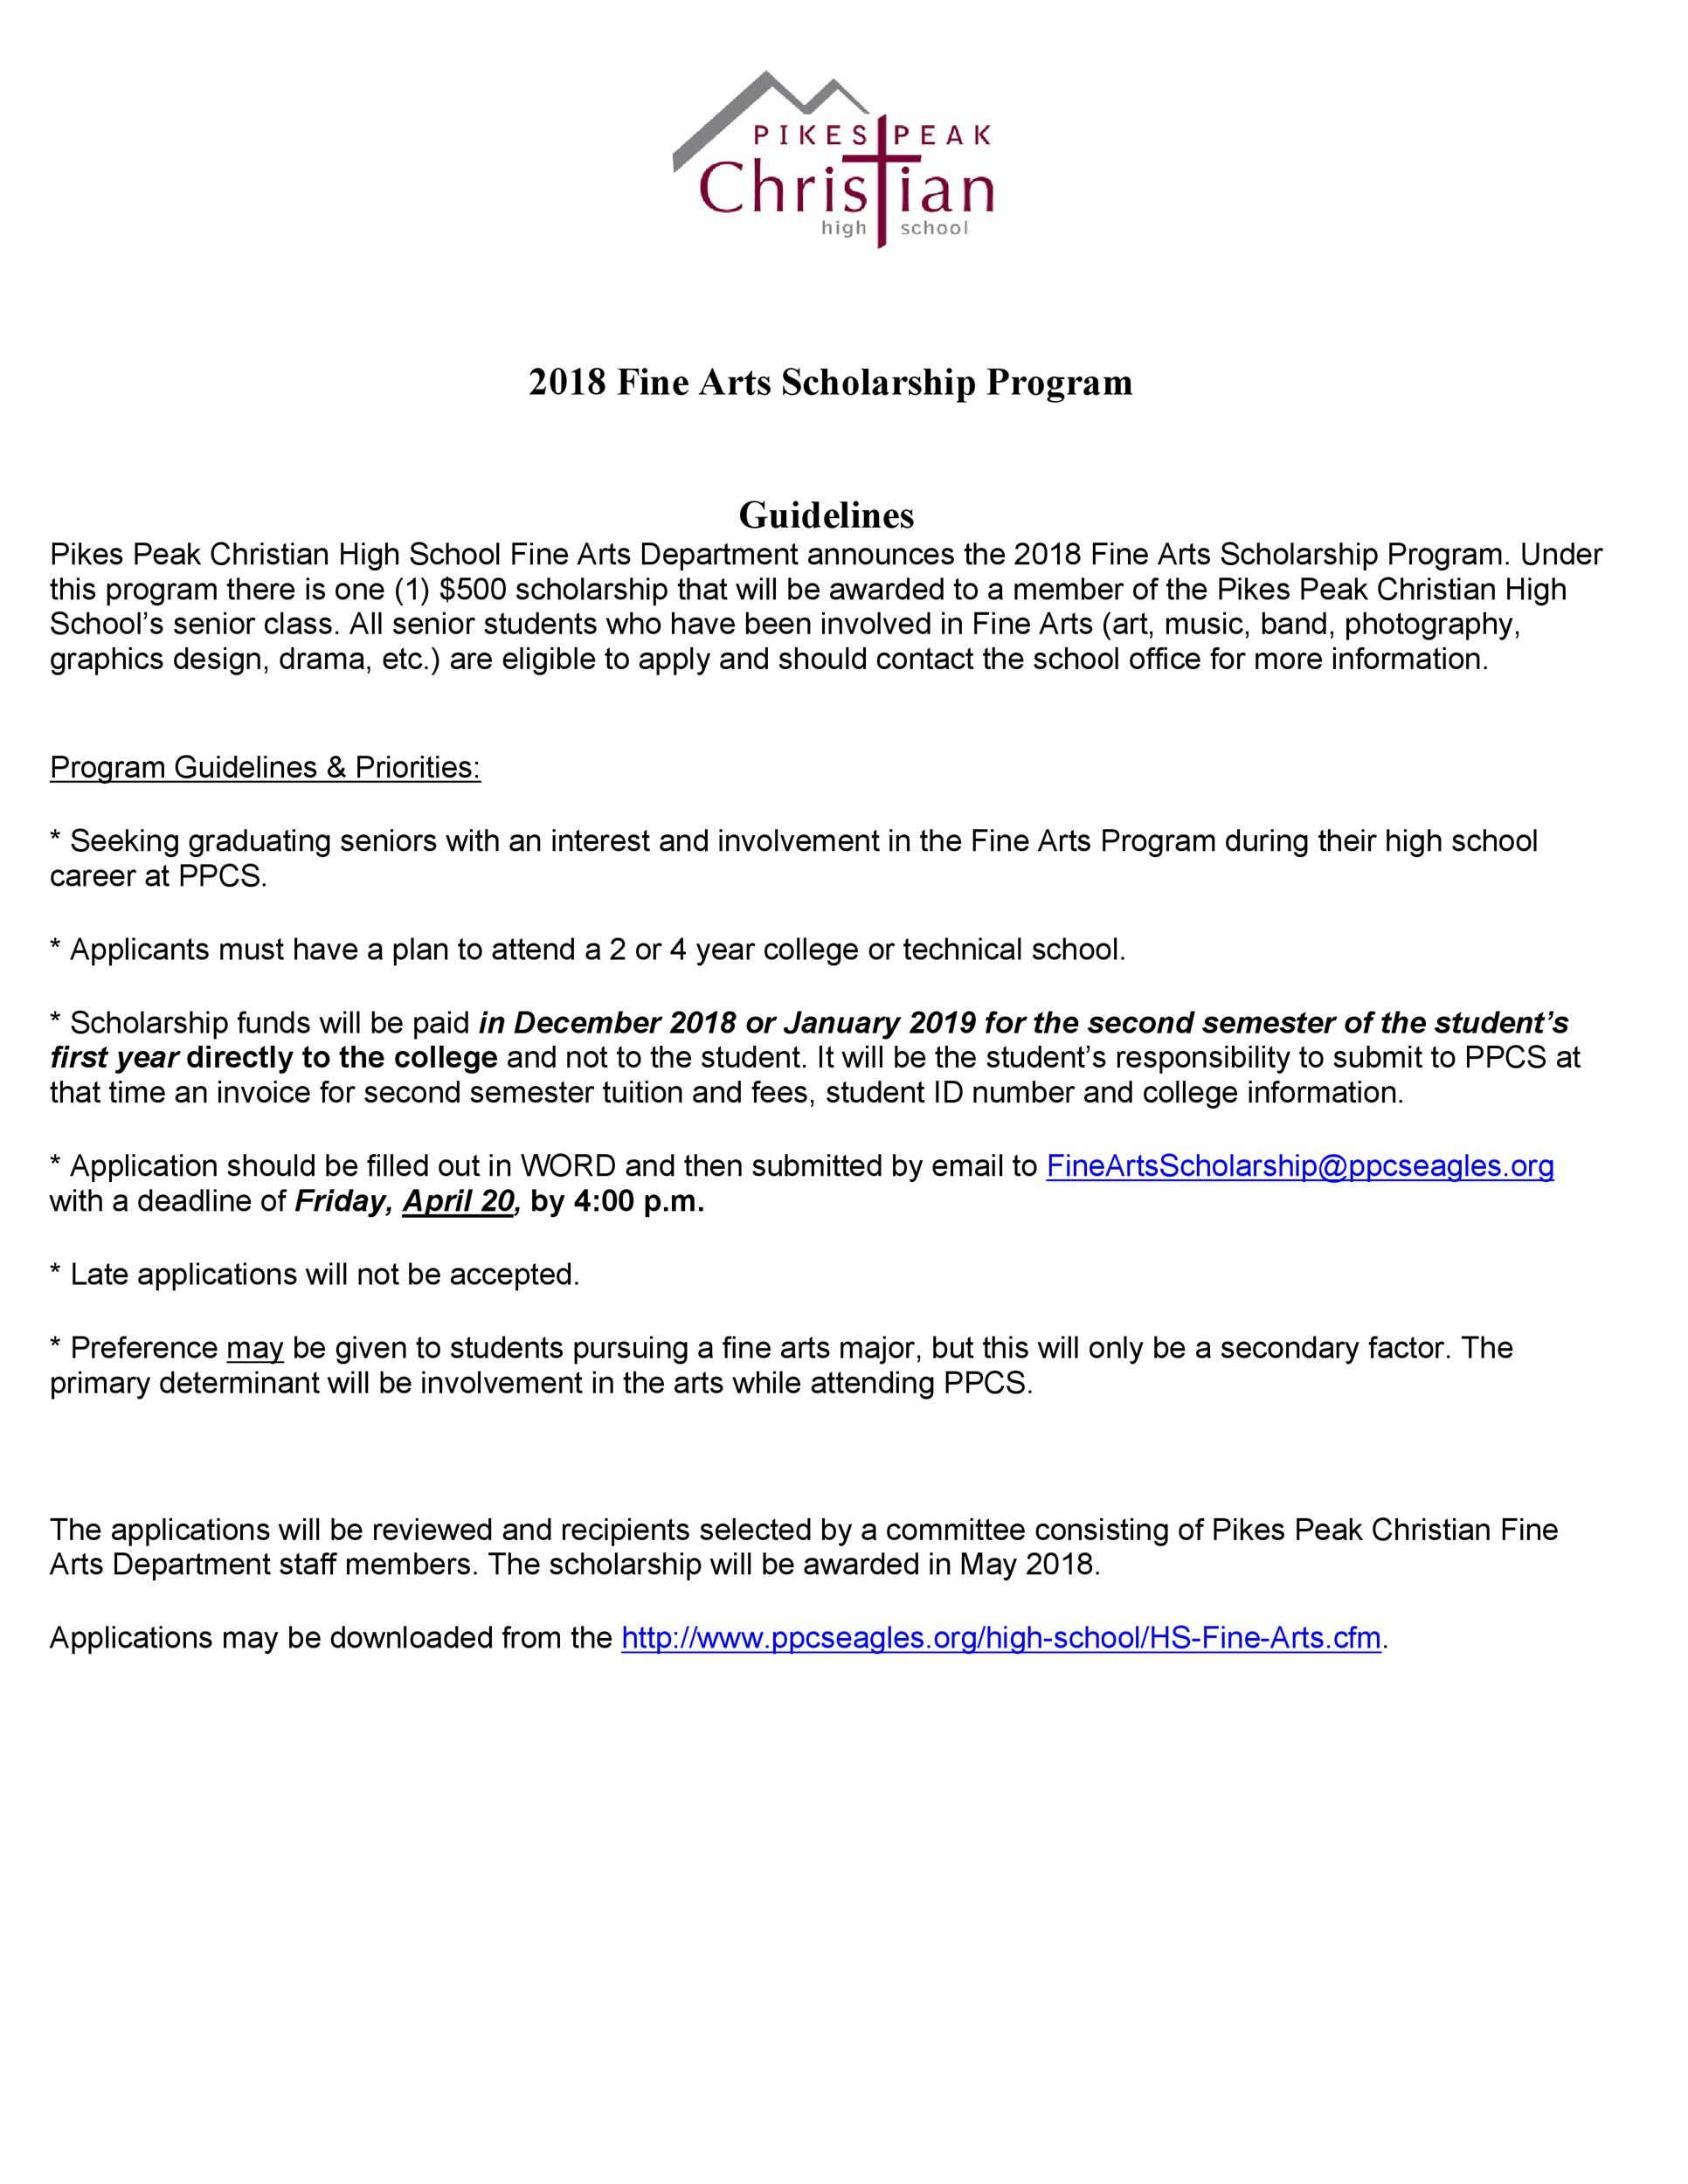 Free Scholarship Application Template 39